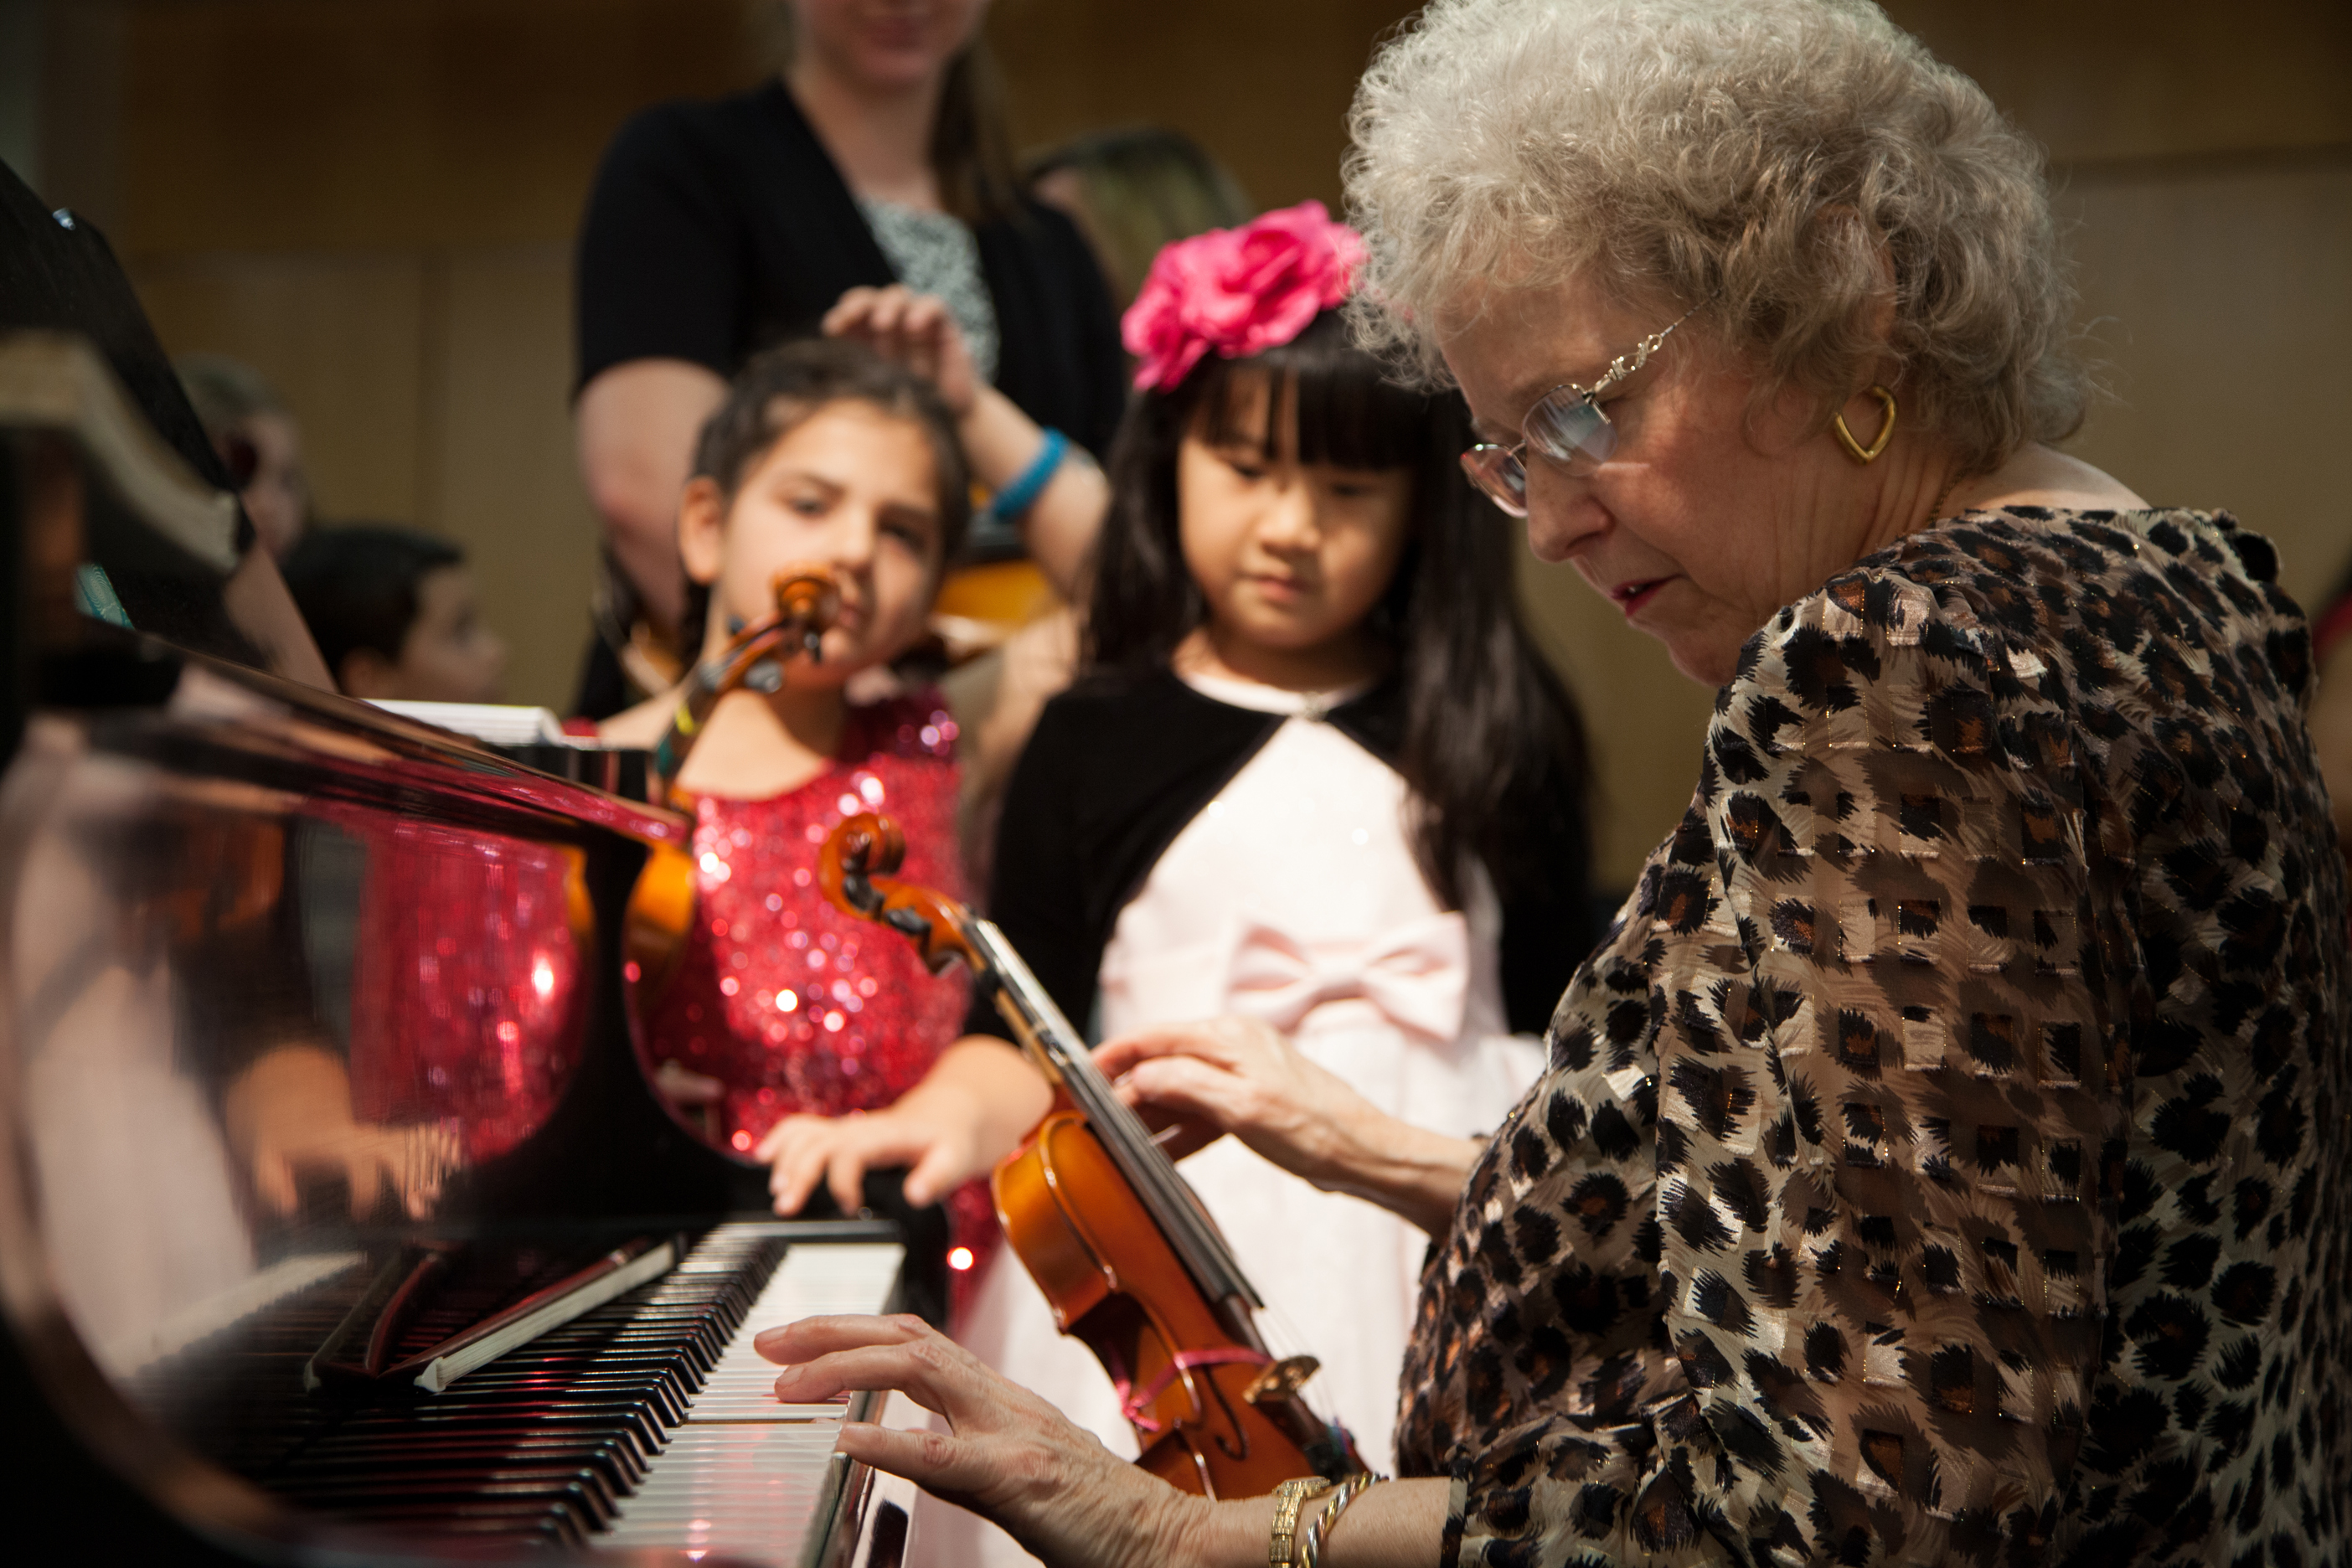 A teacher playing the piano for 2 female students